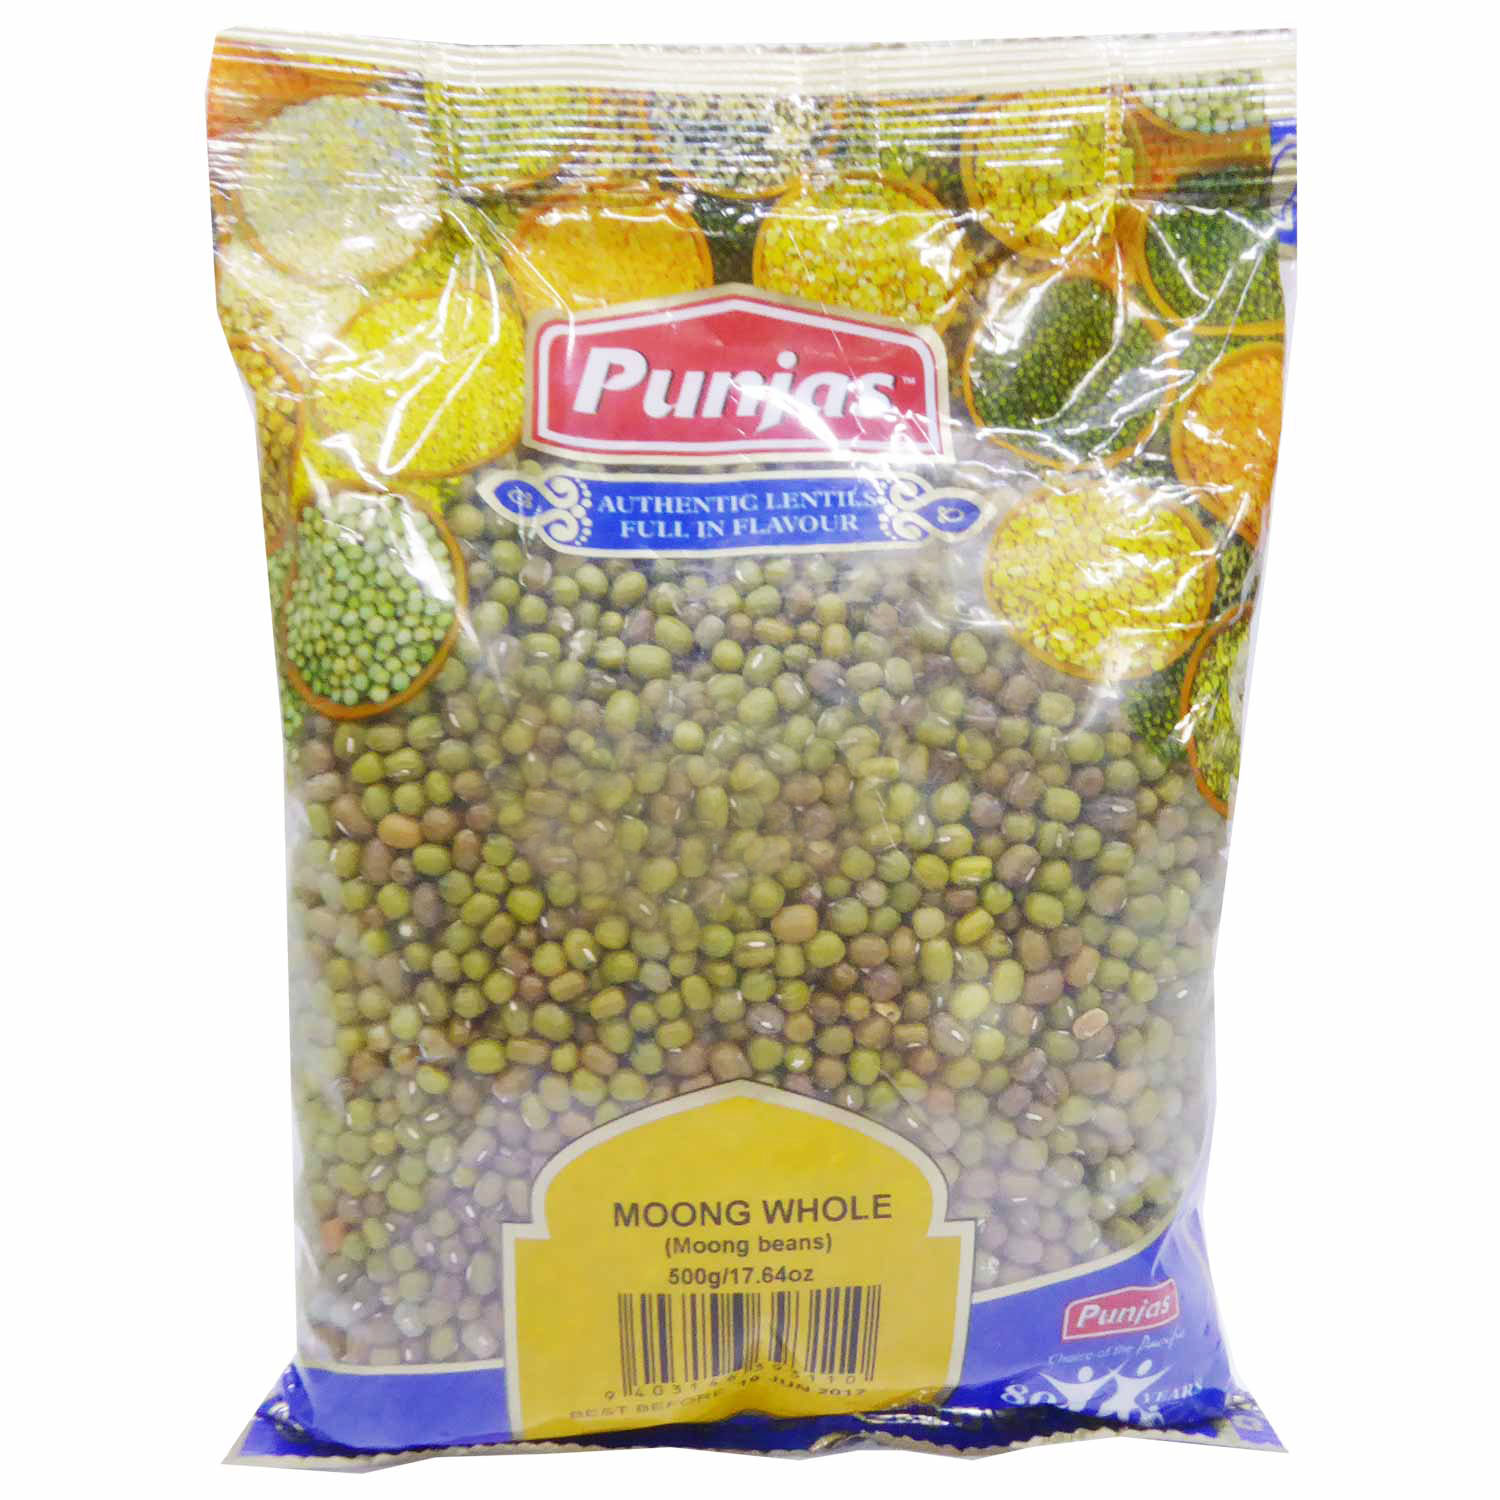 Punjas Moong Dhal (Whole) 500g